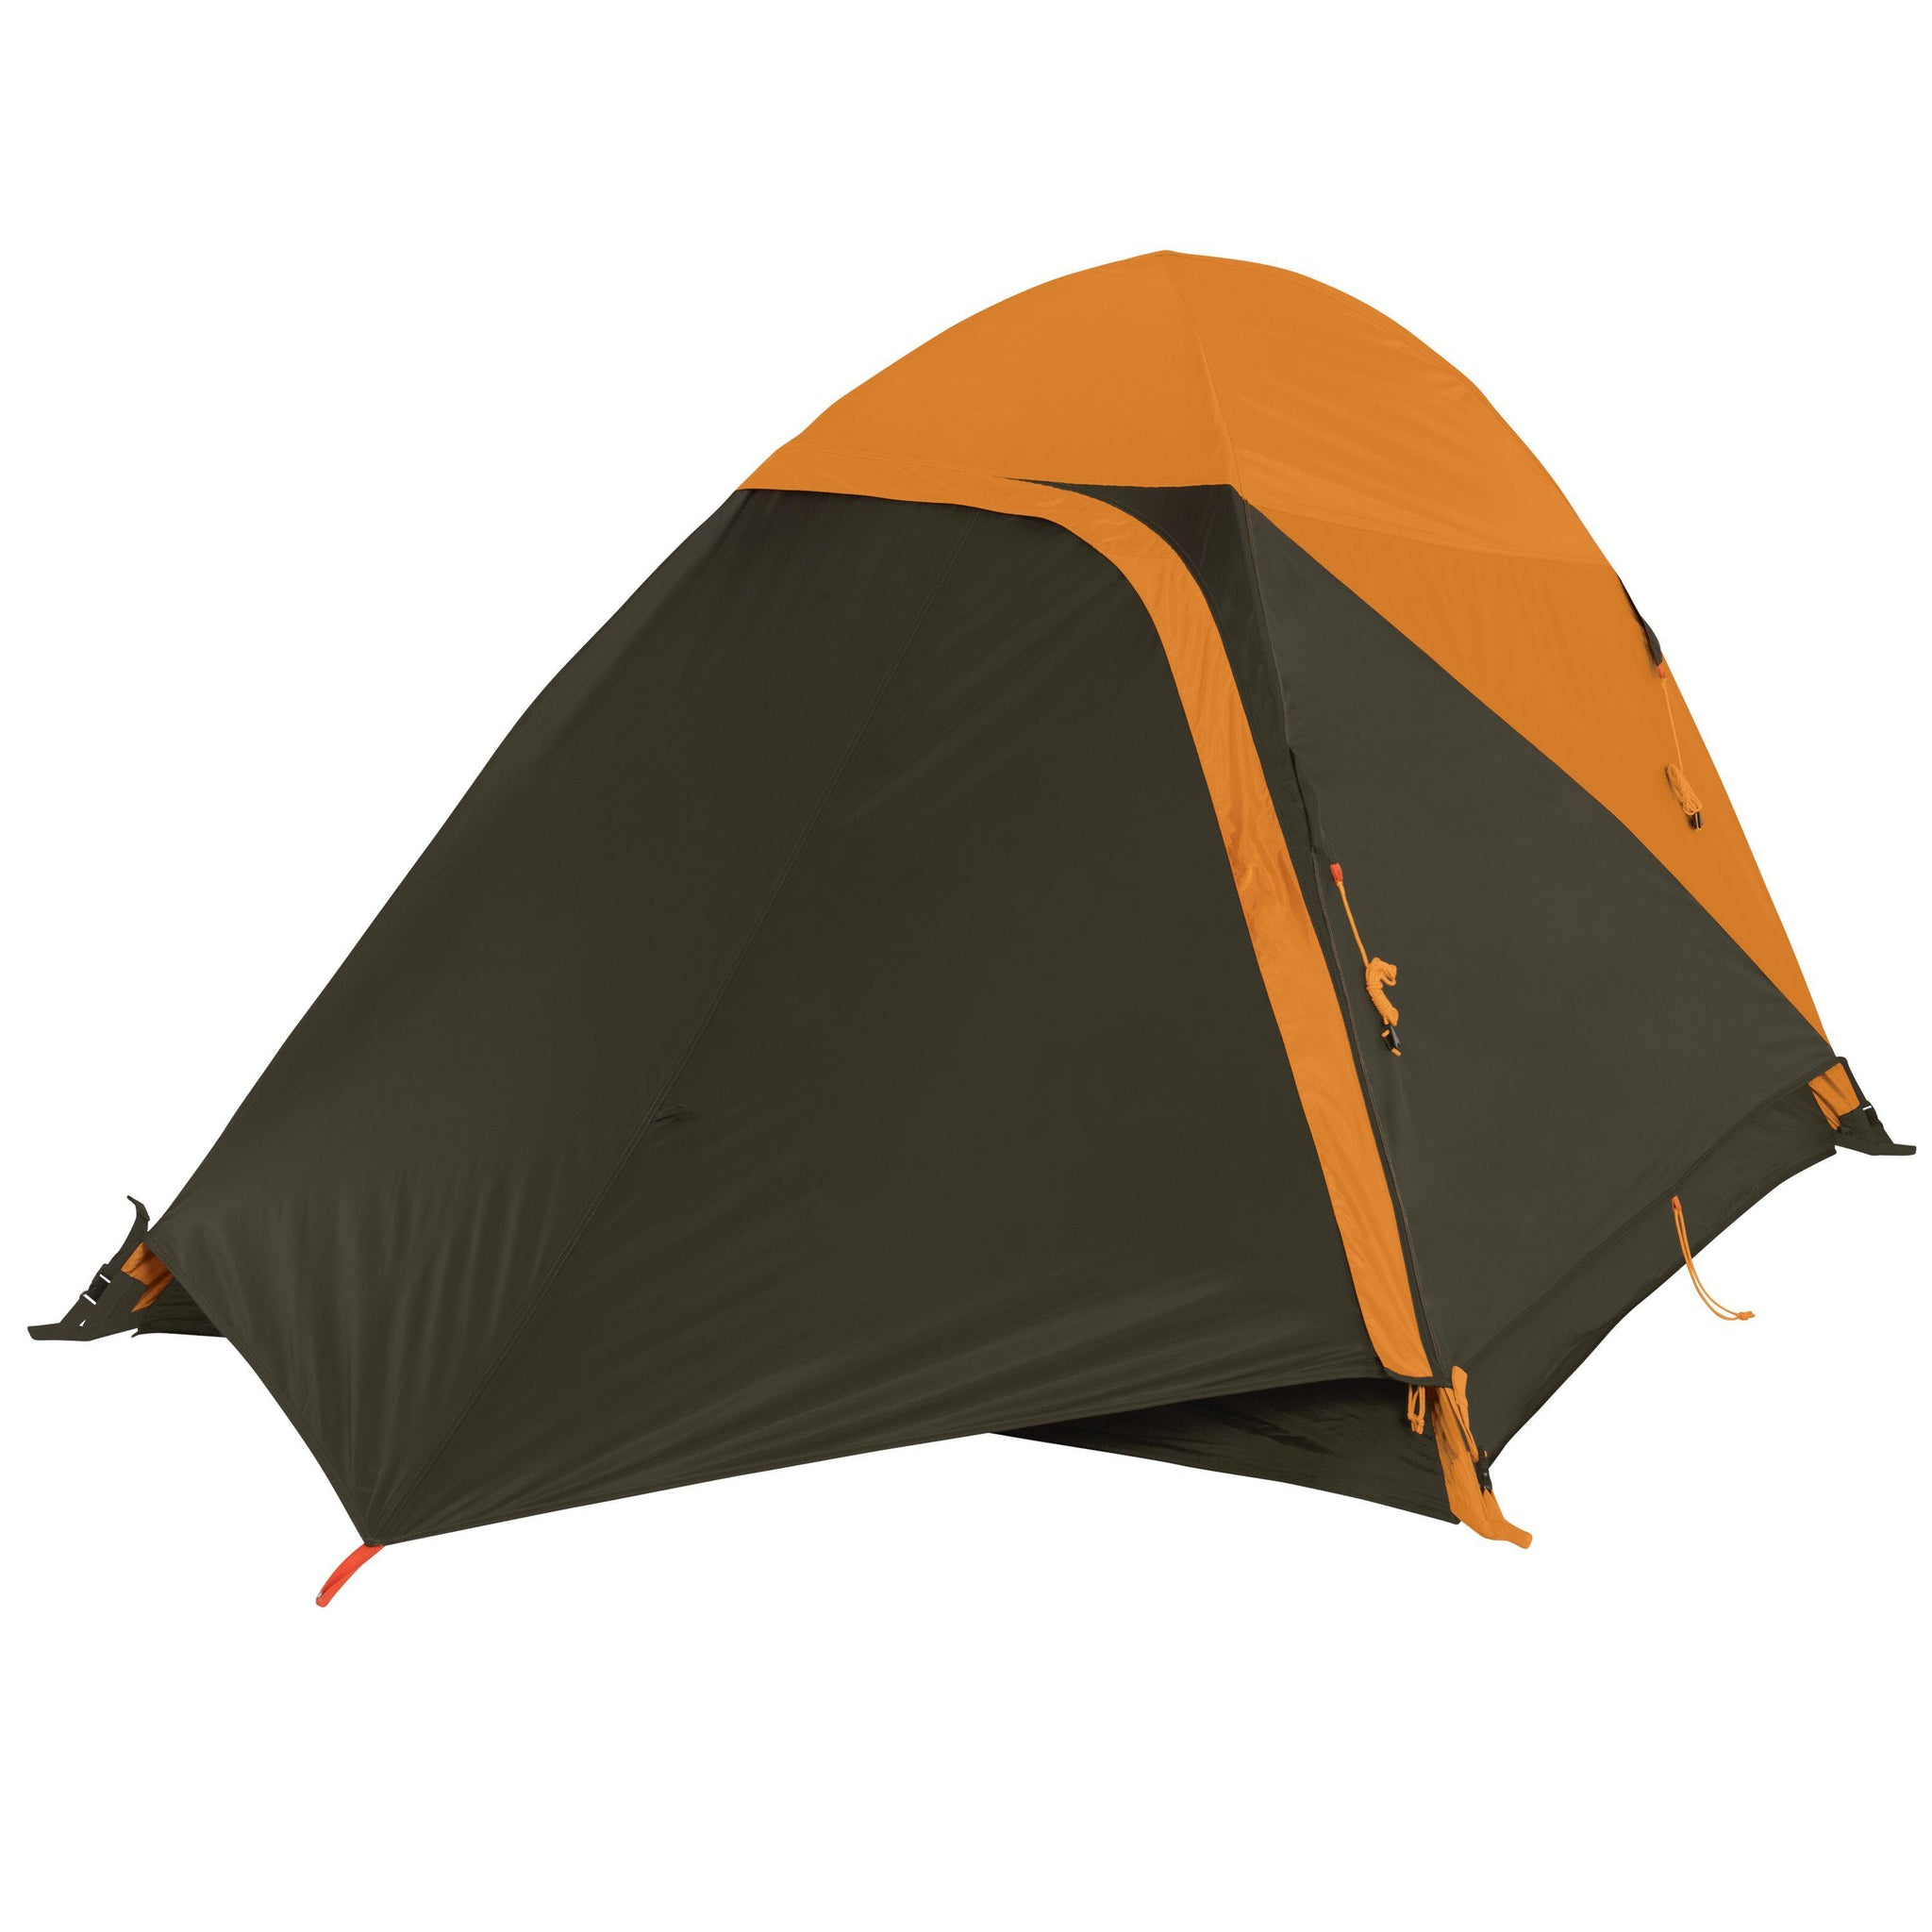 Kelty Grand Mesa Backpacking Tent (2020 Update) - 2 Person